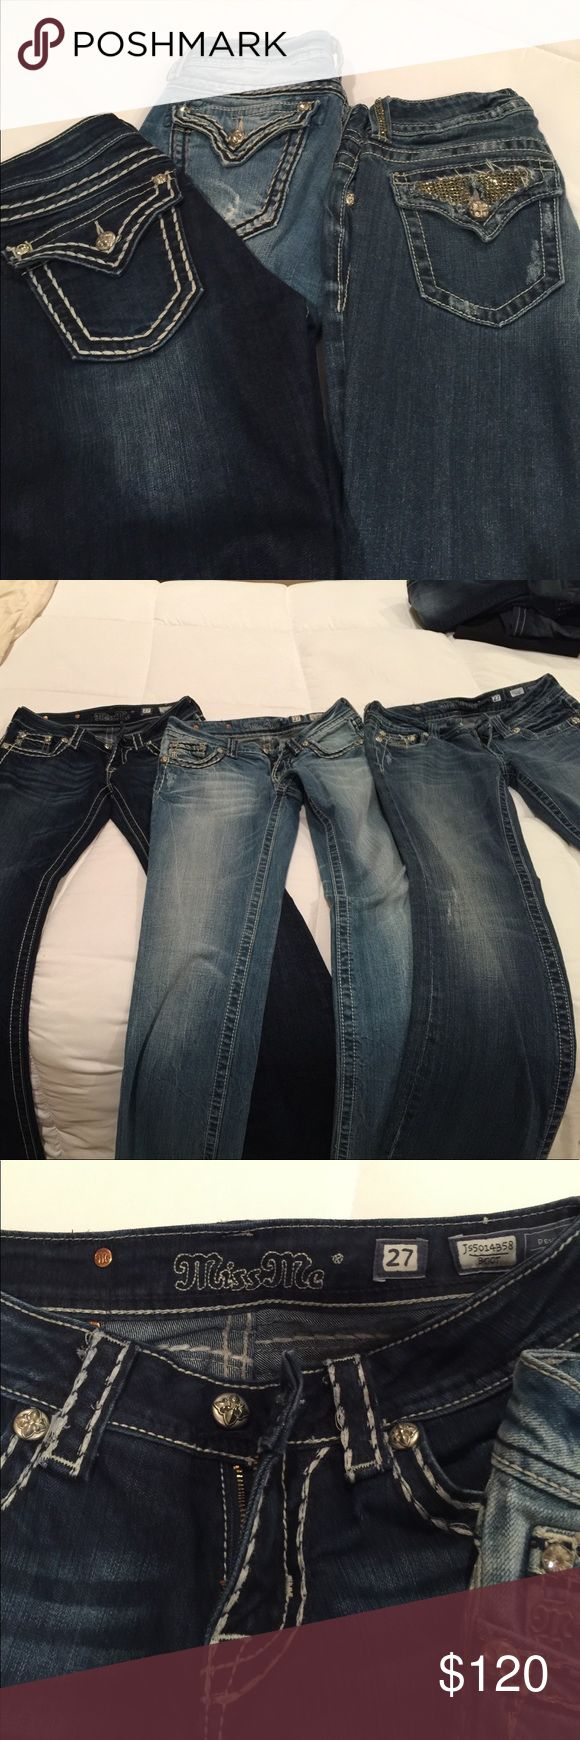 3 pair of Miss Me bootleg jeans Miss Me bootleg jeans excellent condition, size 27 Miss Me Jeans Boot Cut